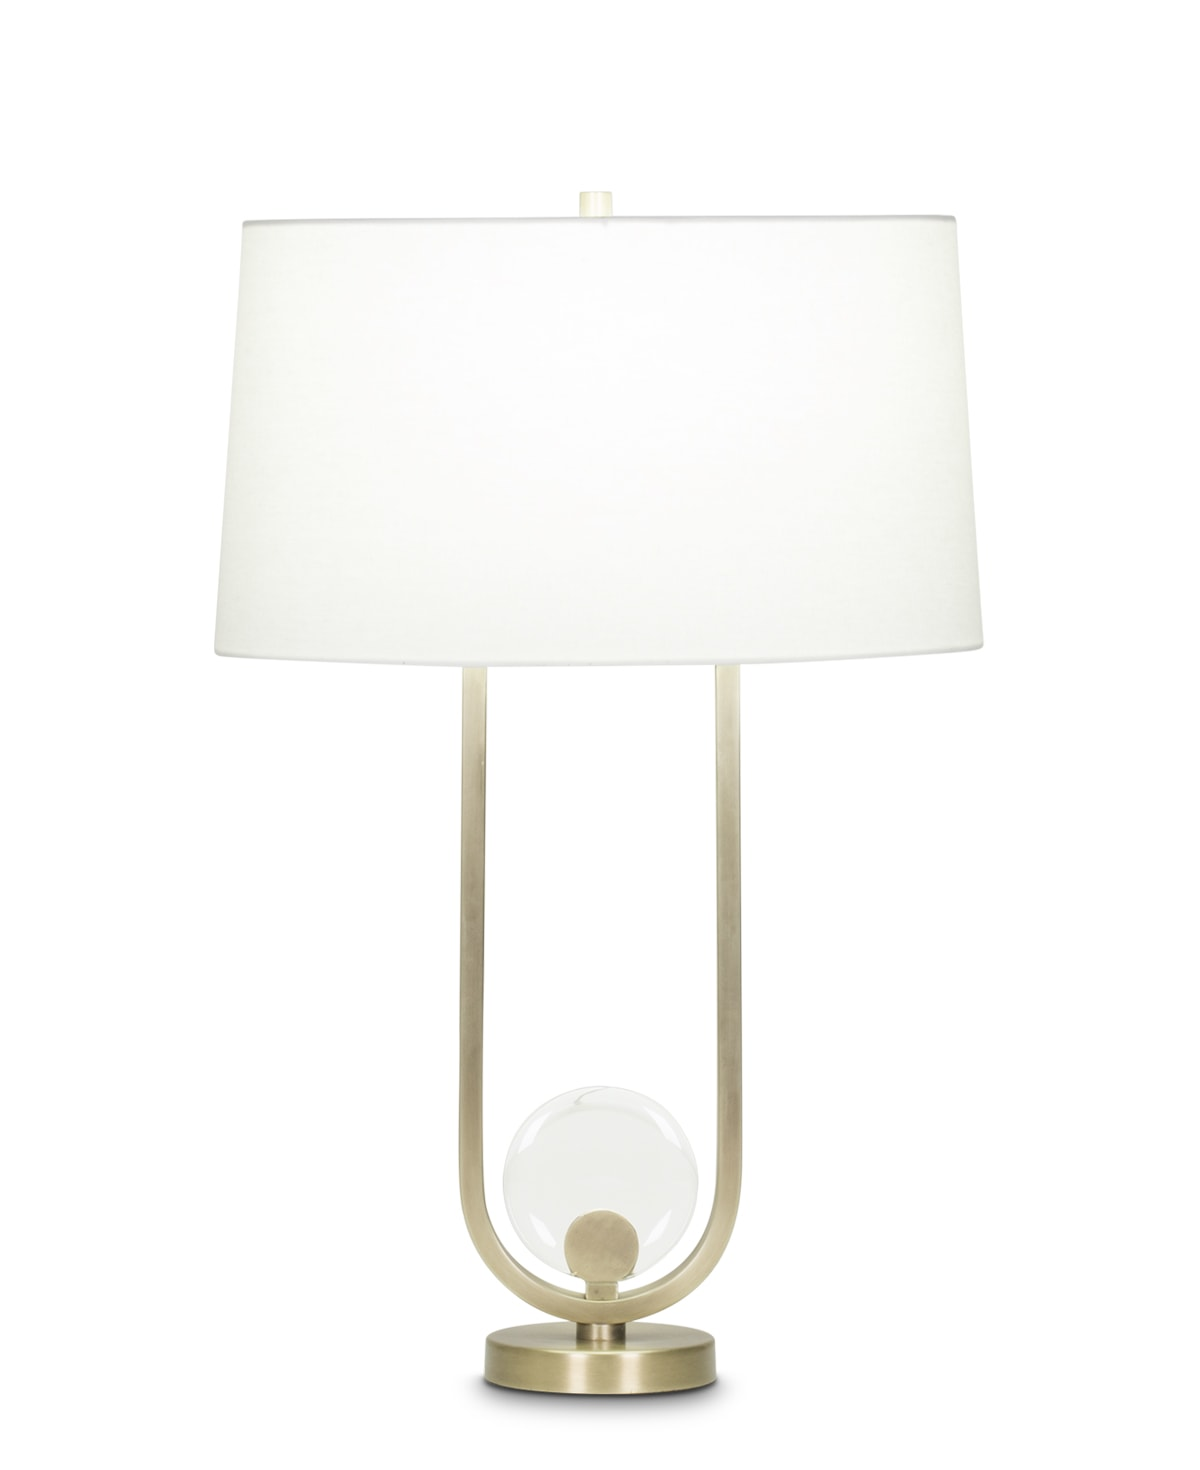 FlowDecor Atwood Table Lamp in metal with antique brass finish and crystal and off-white linen oval shade (# 4042)